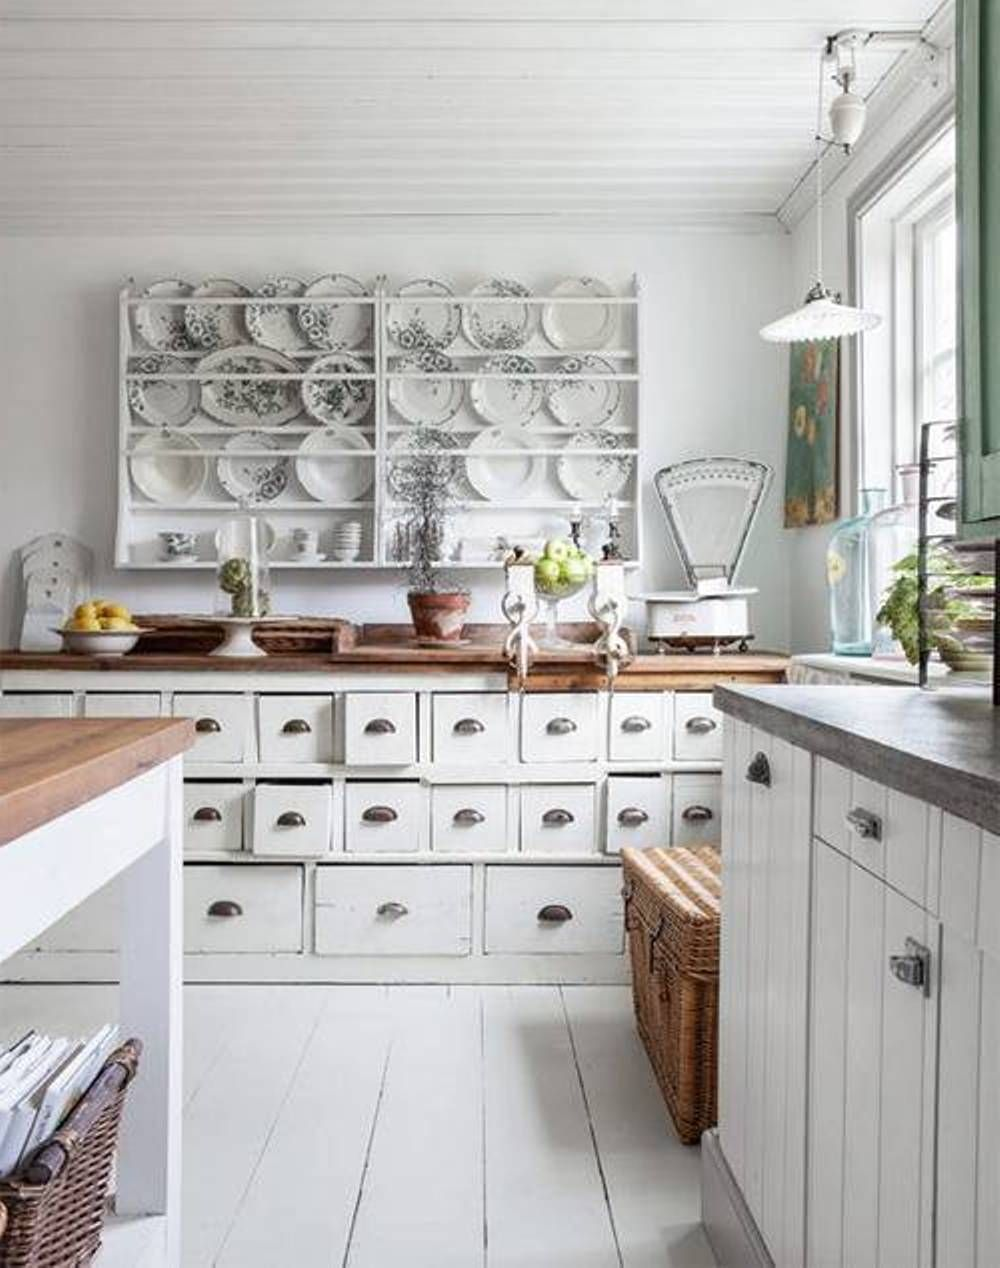 25 CHARMING SHABBY CHIC STYLE KITCHEN DESIGNS